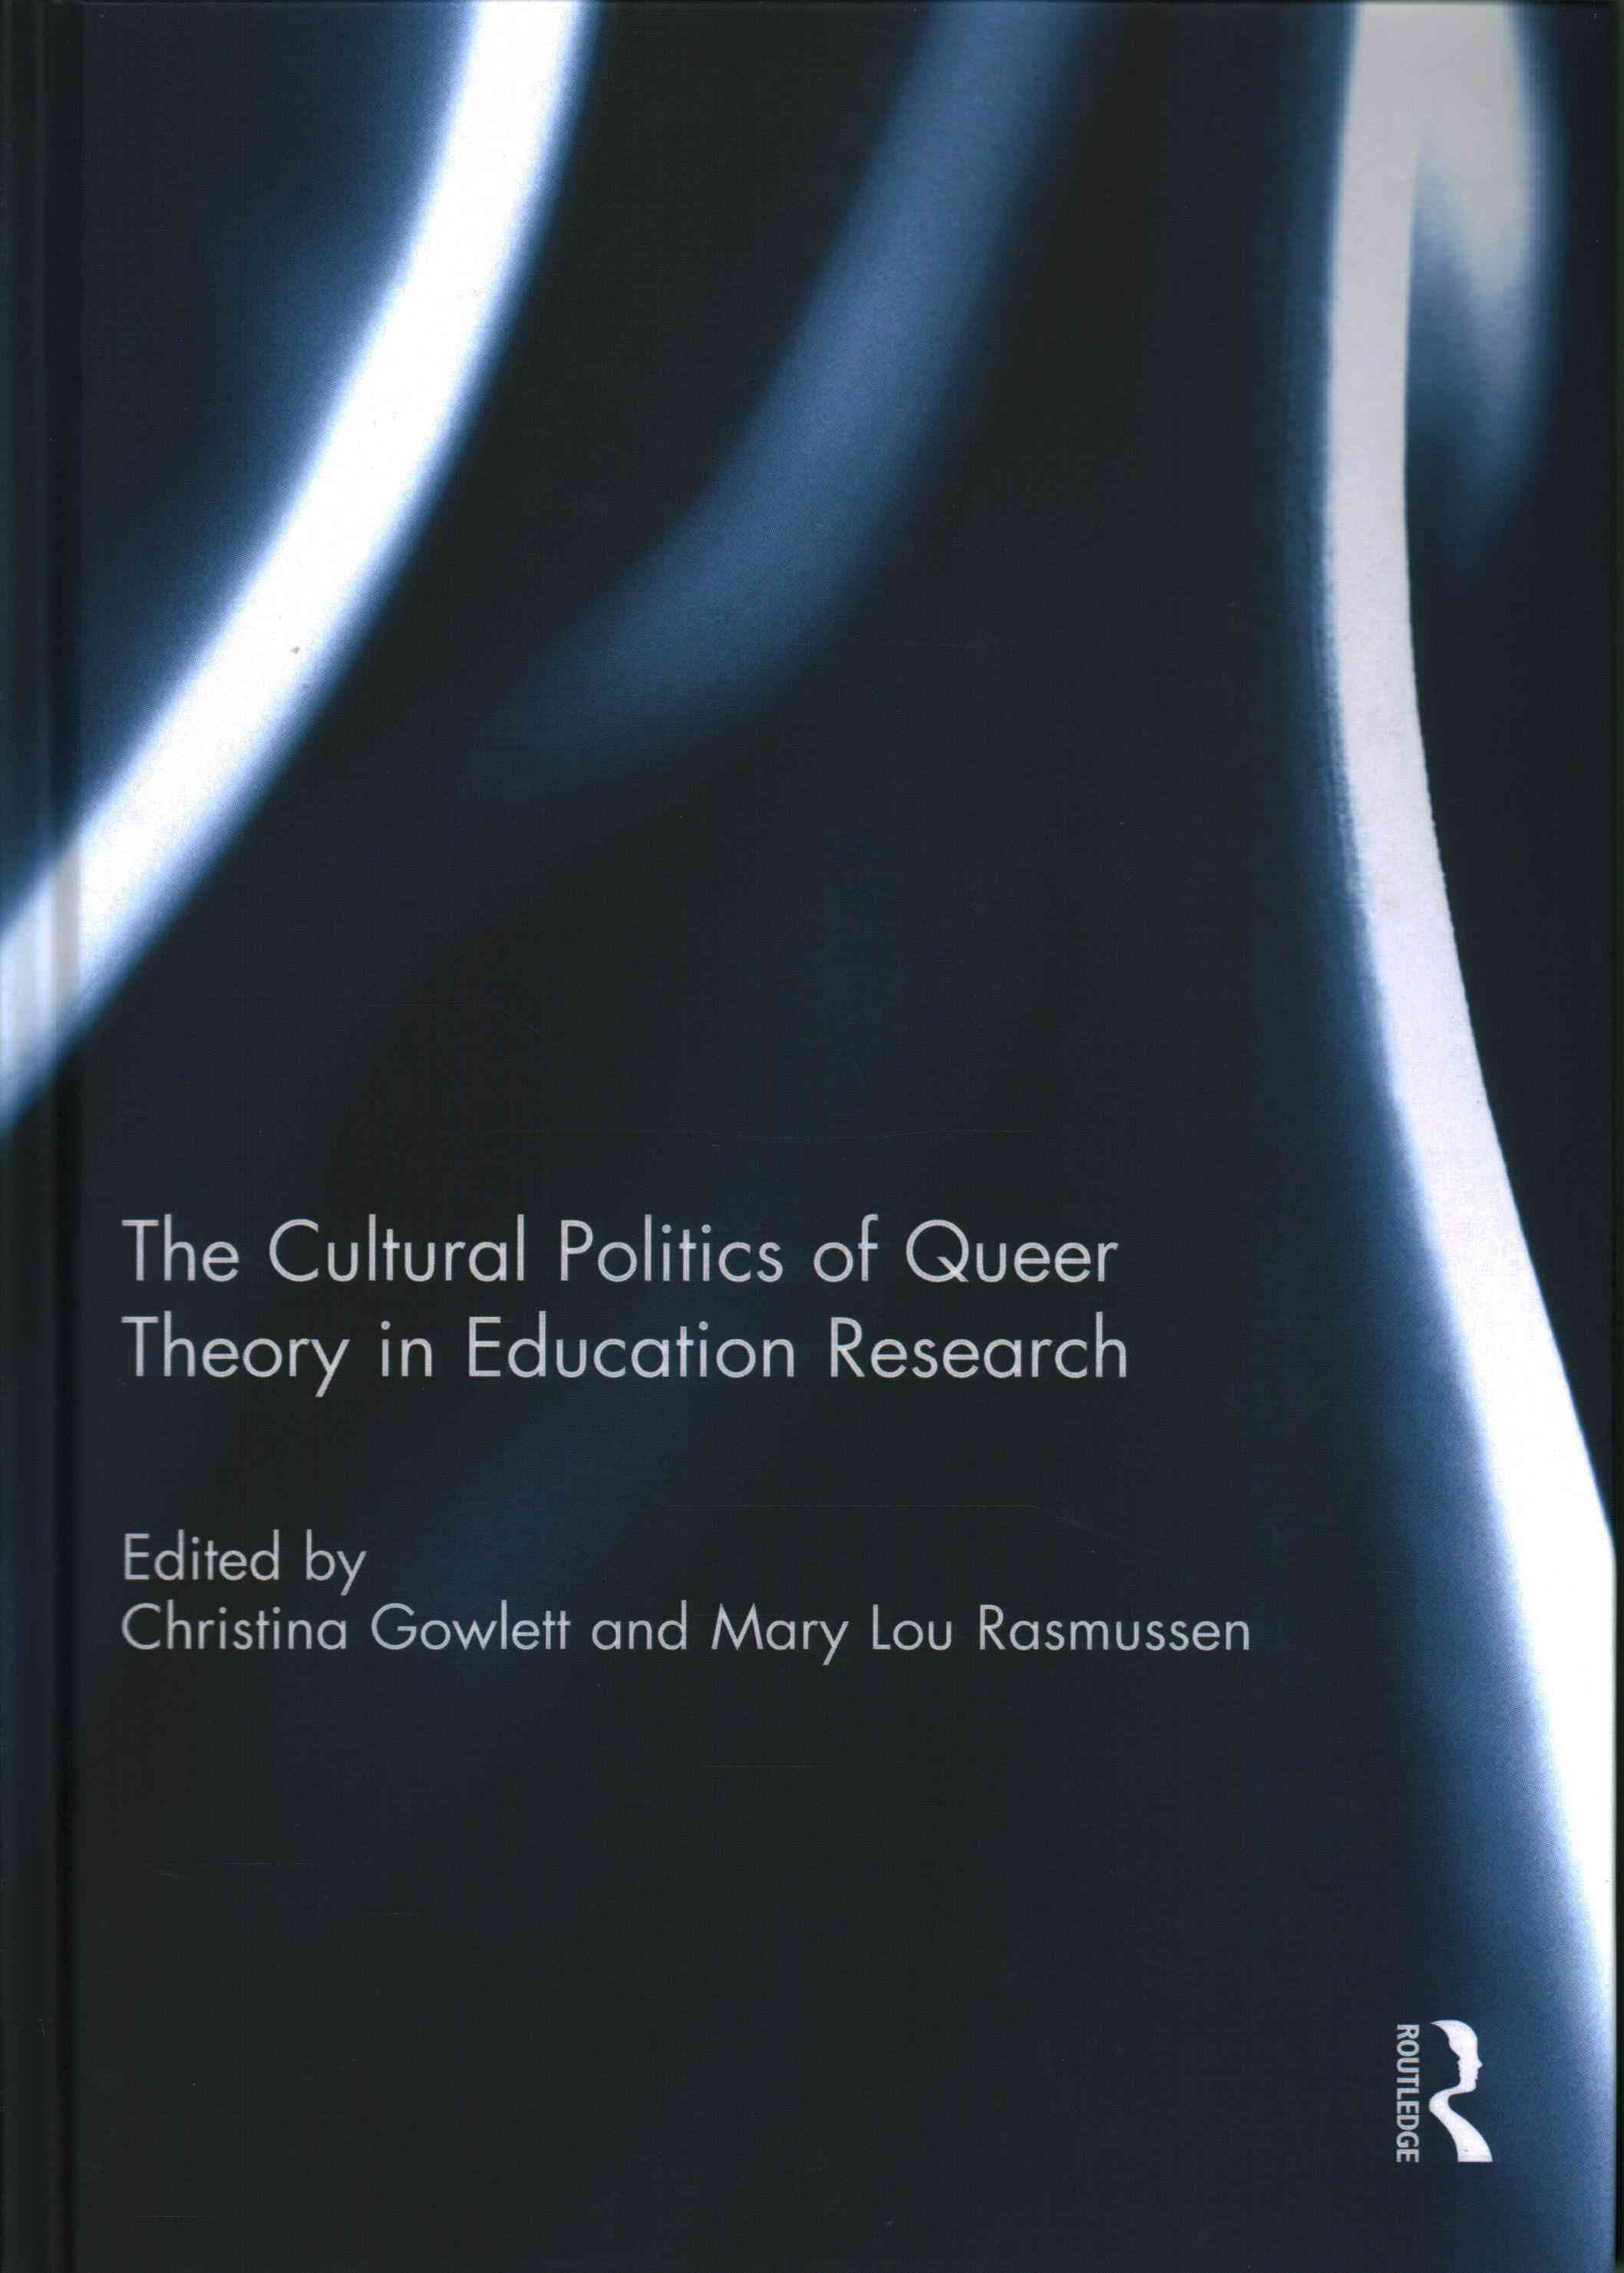 The Cultural Politics of Queer Theory in Education Research